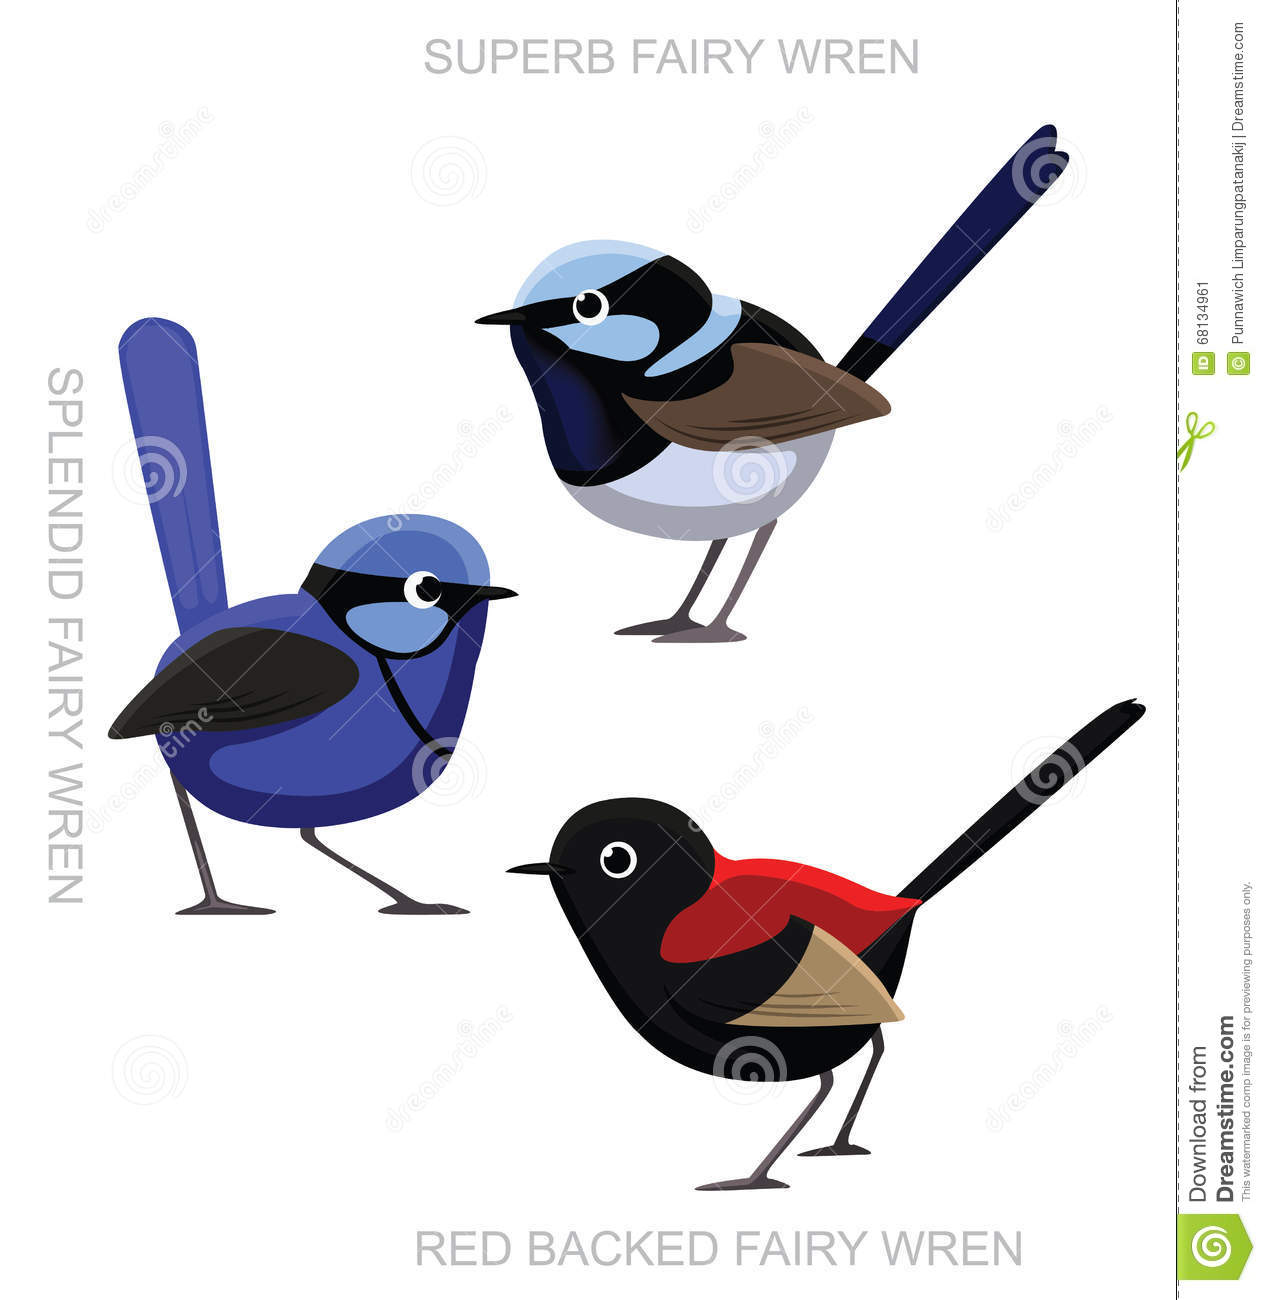 Fairy-wren clipart #20, Download drawings